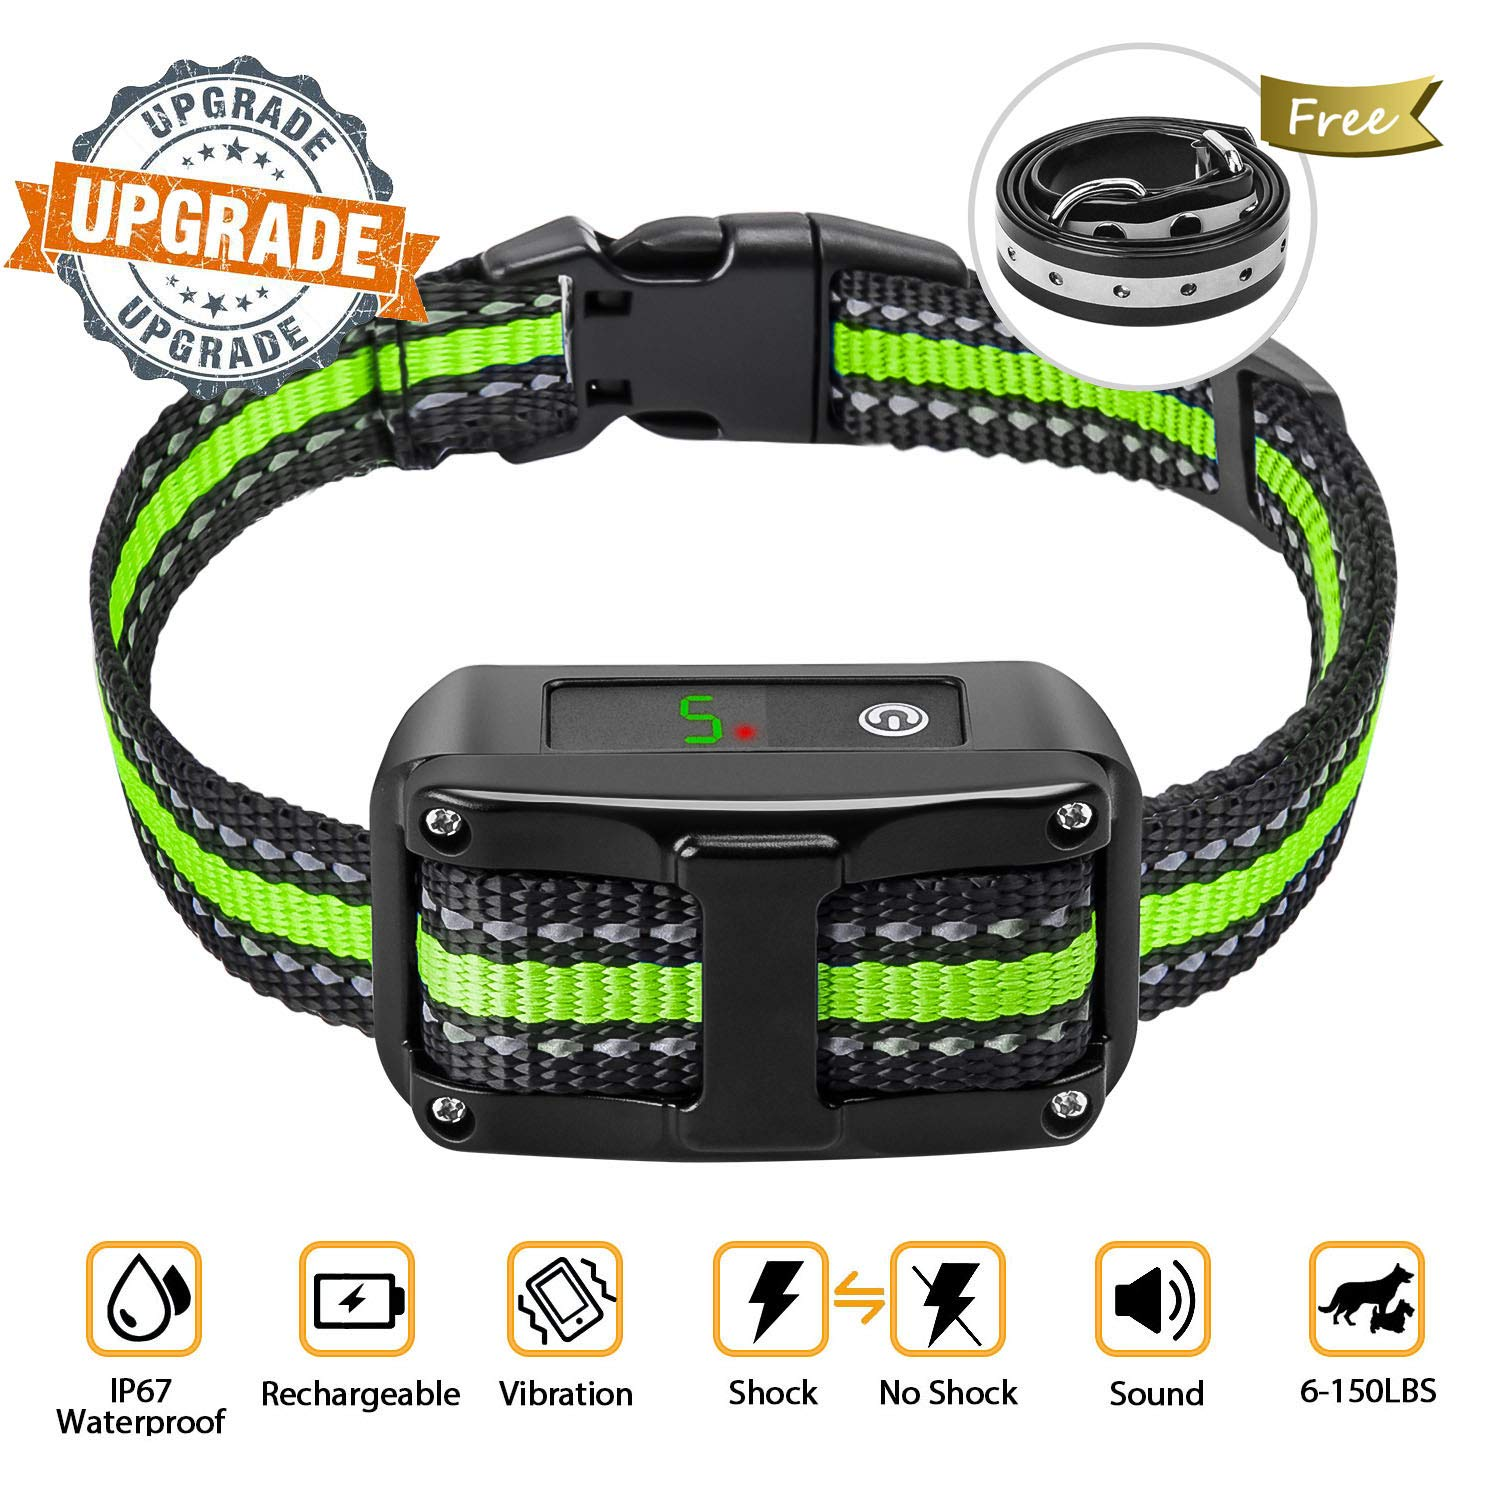 [Newest 2019]Dog Bark Collar-5 Adjustable Sensitivity and Intensity Levels-Dual Anti-Barking Modes-Rechargeable/Rainproof/Reflective -No Barking Control Dog shock Collar for Small Medium Large Dog by PetYeah (Image #1)